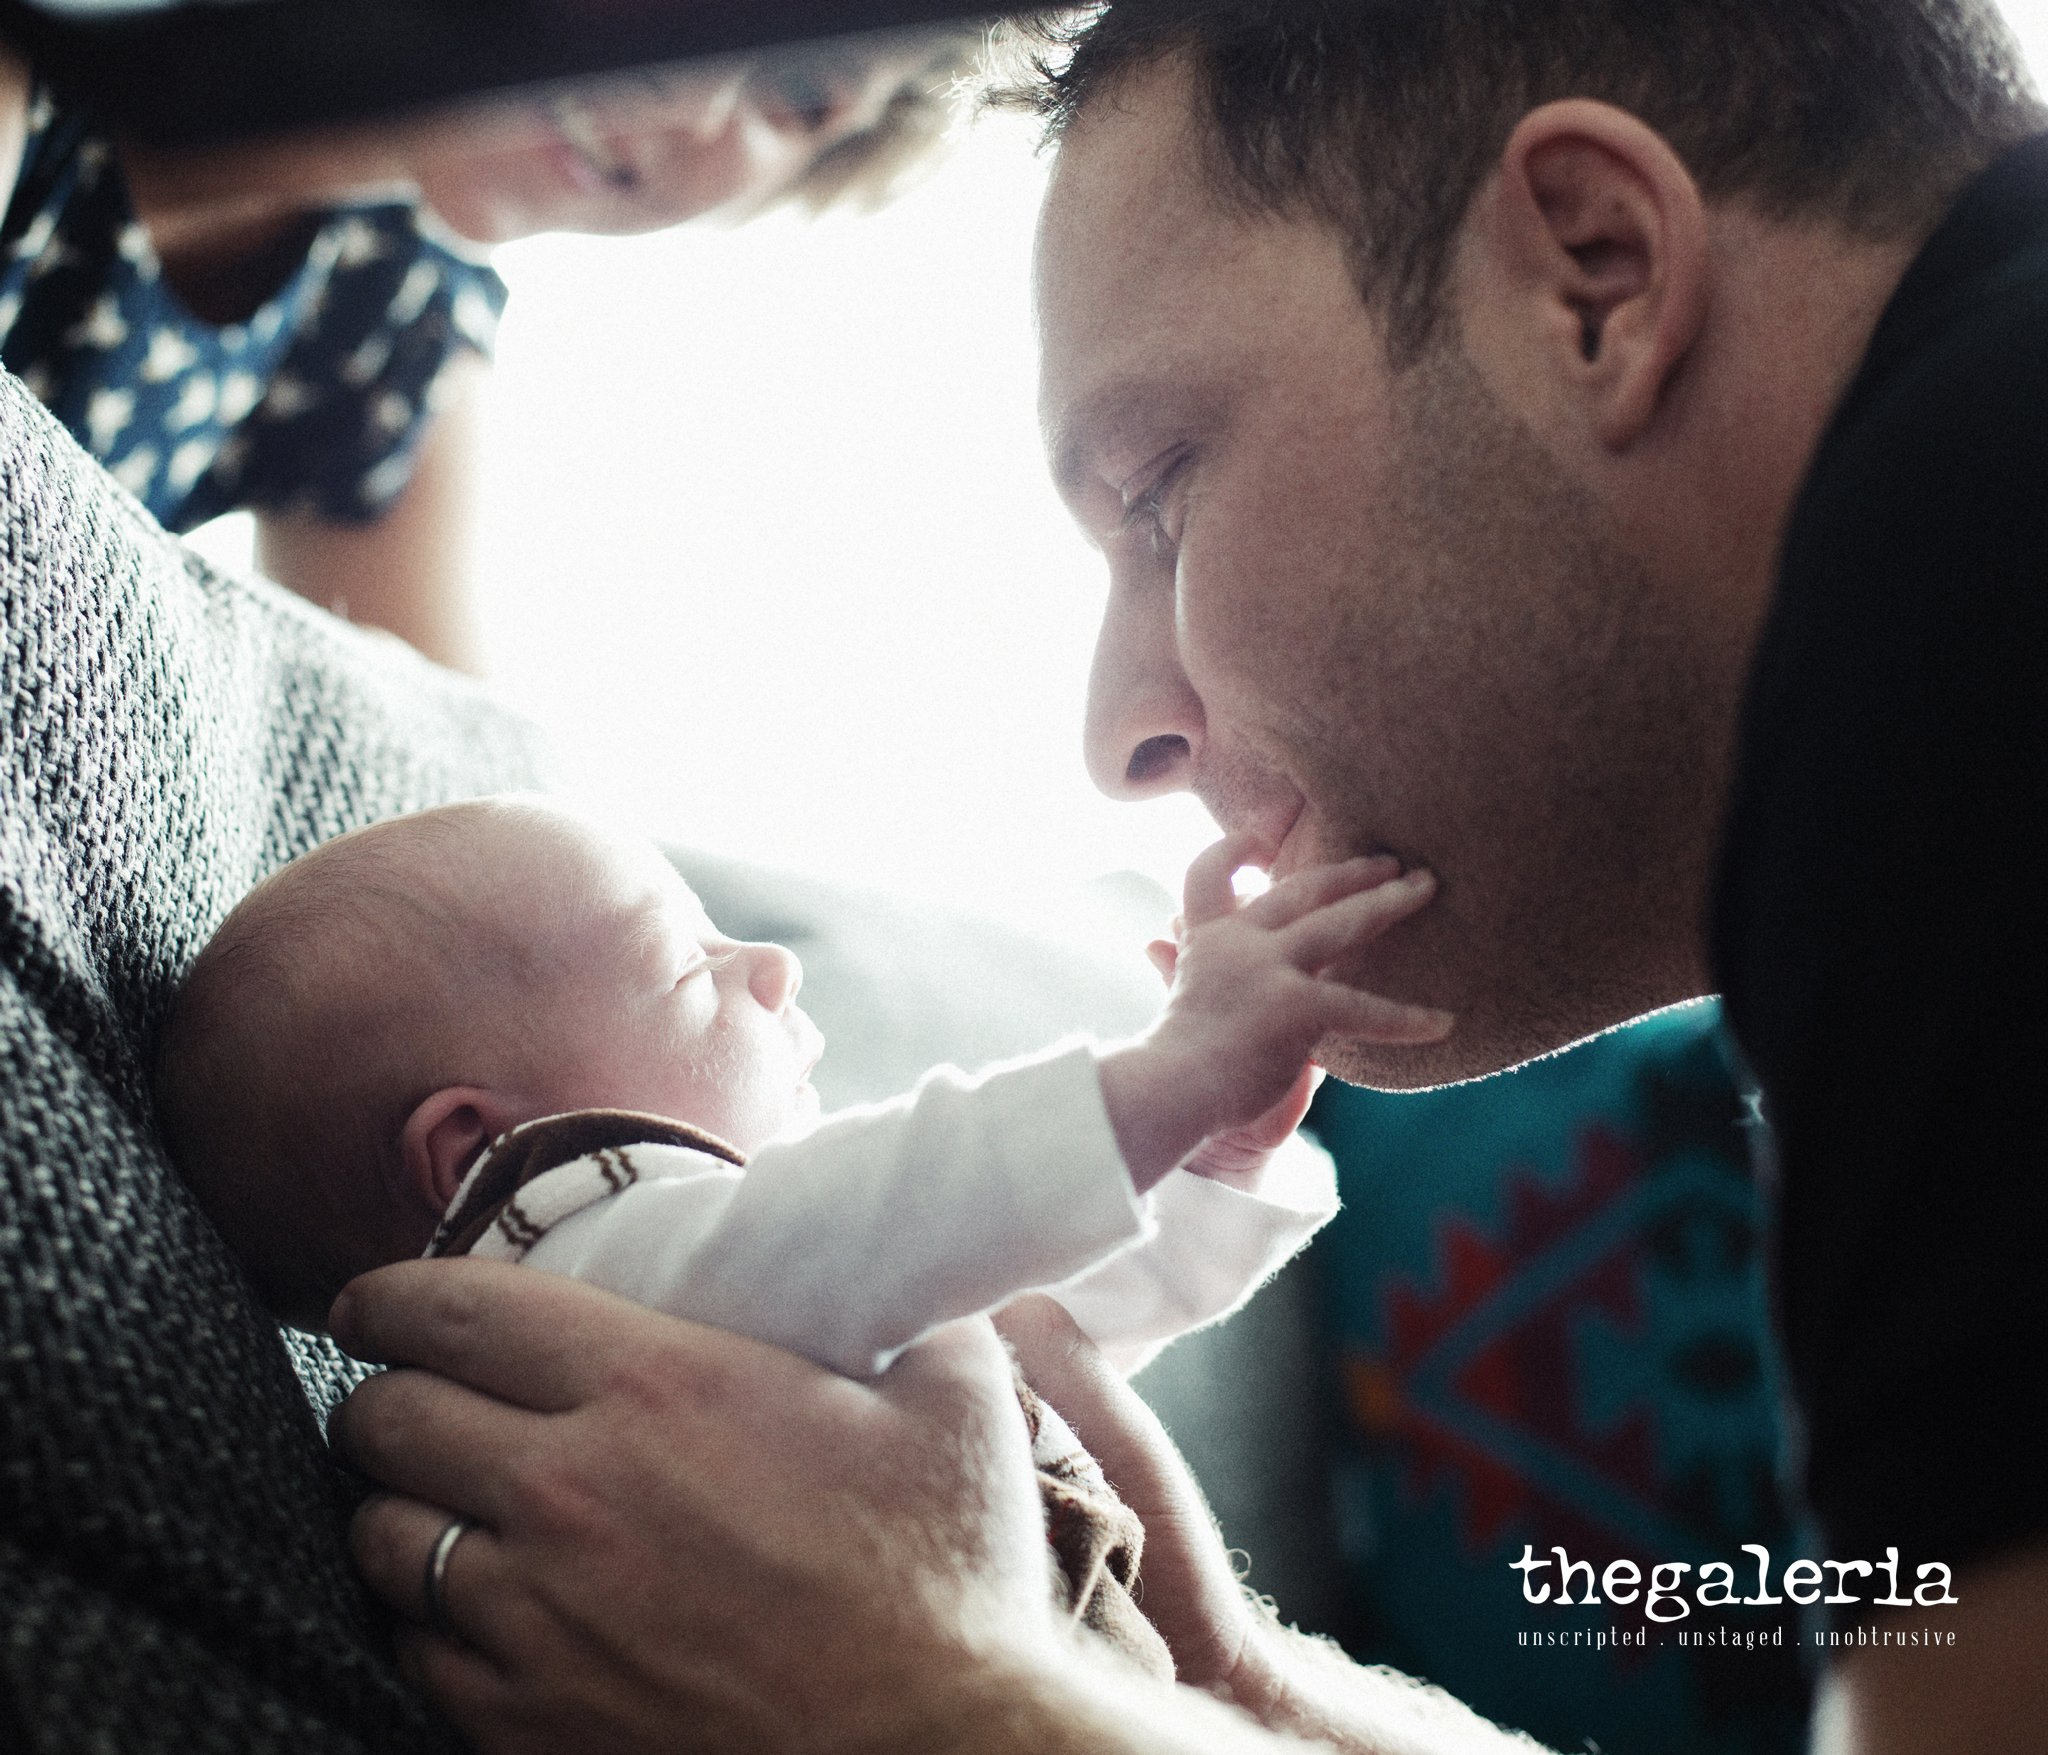 Baby & Newborn Photography by Film Photographer Brian Ho from thegaleria